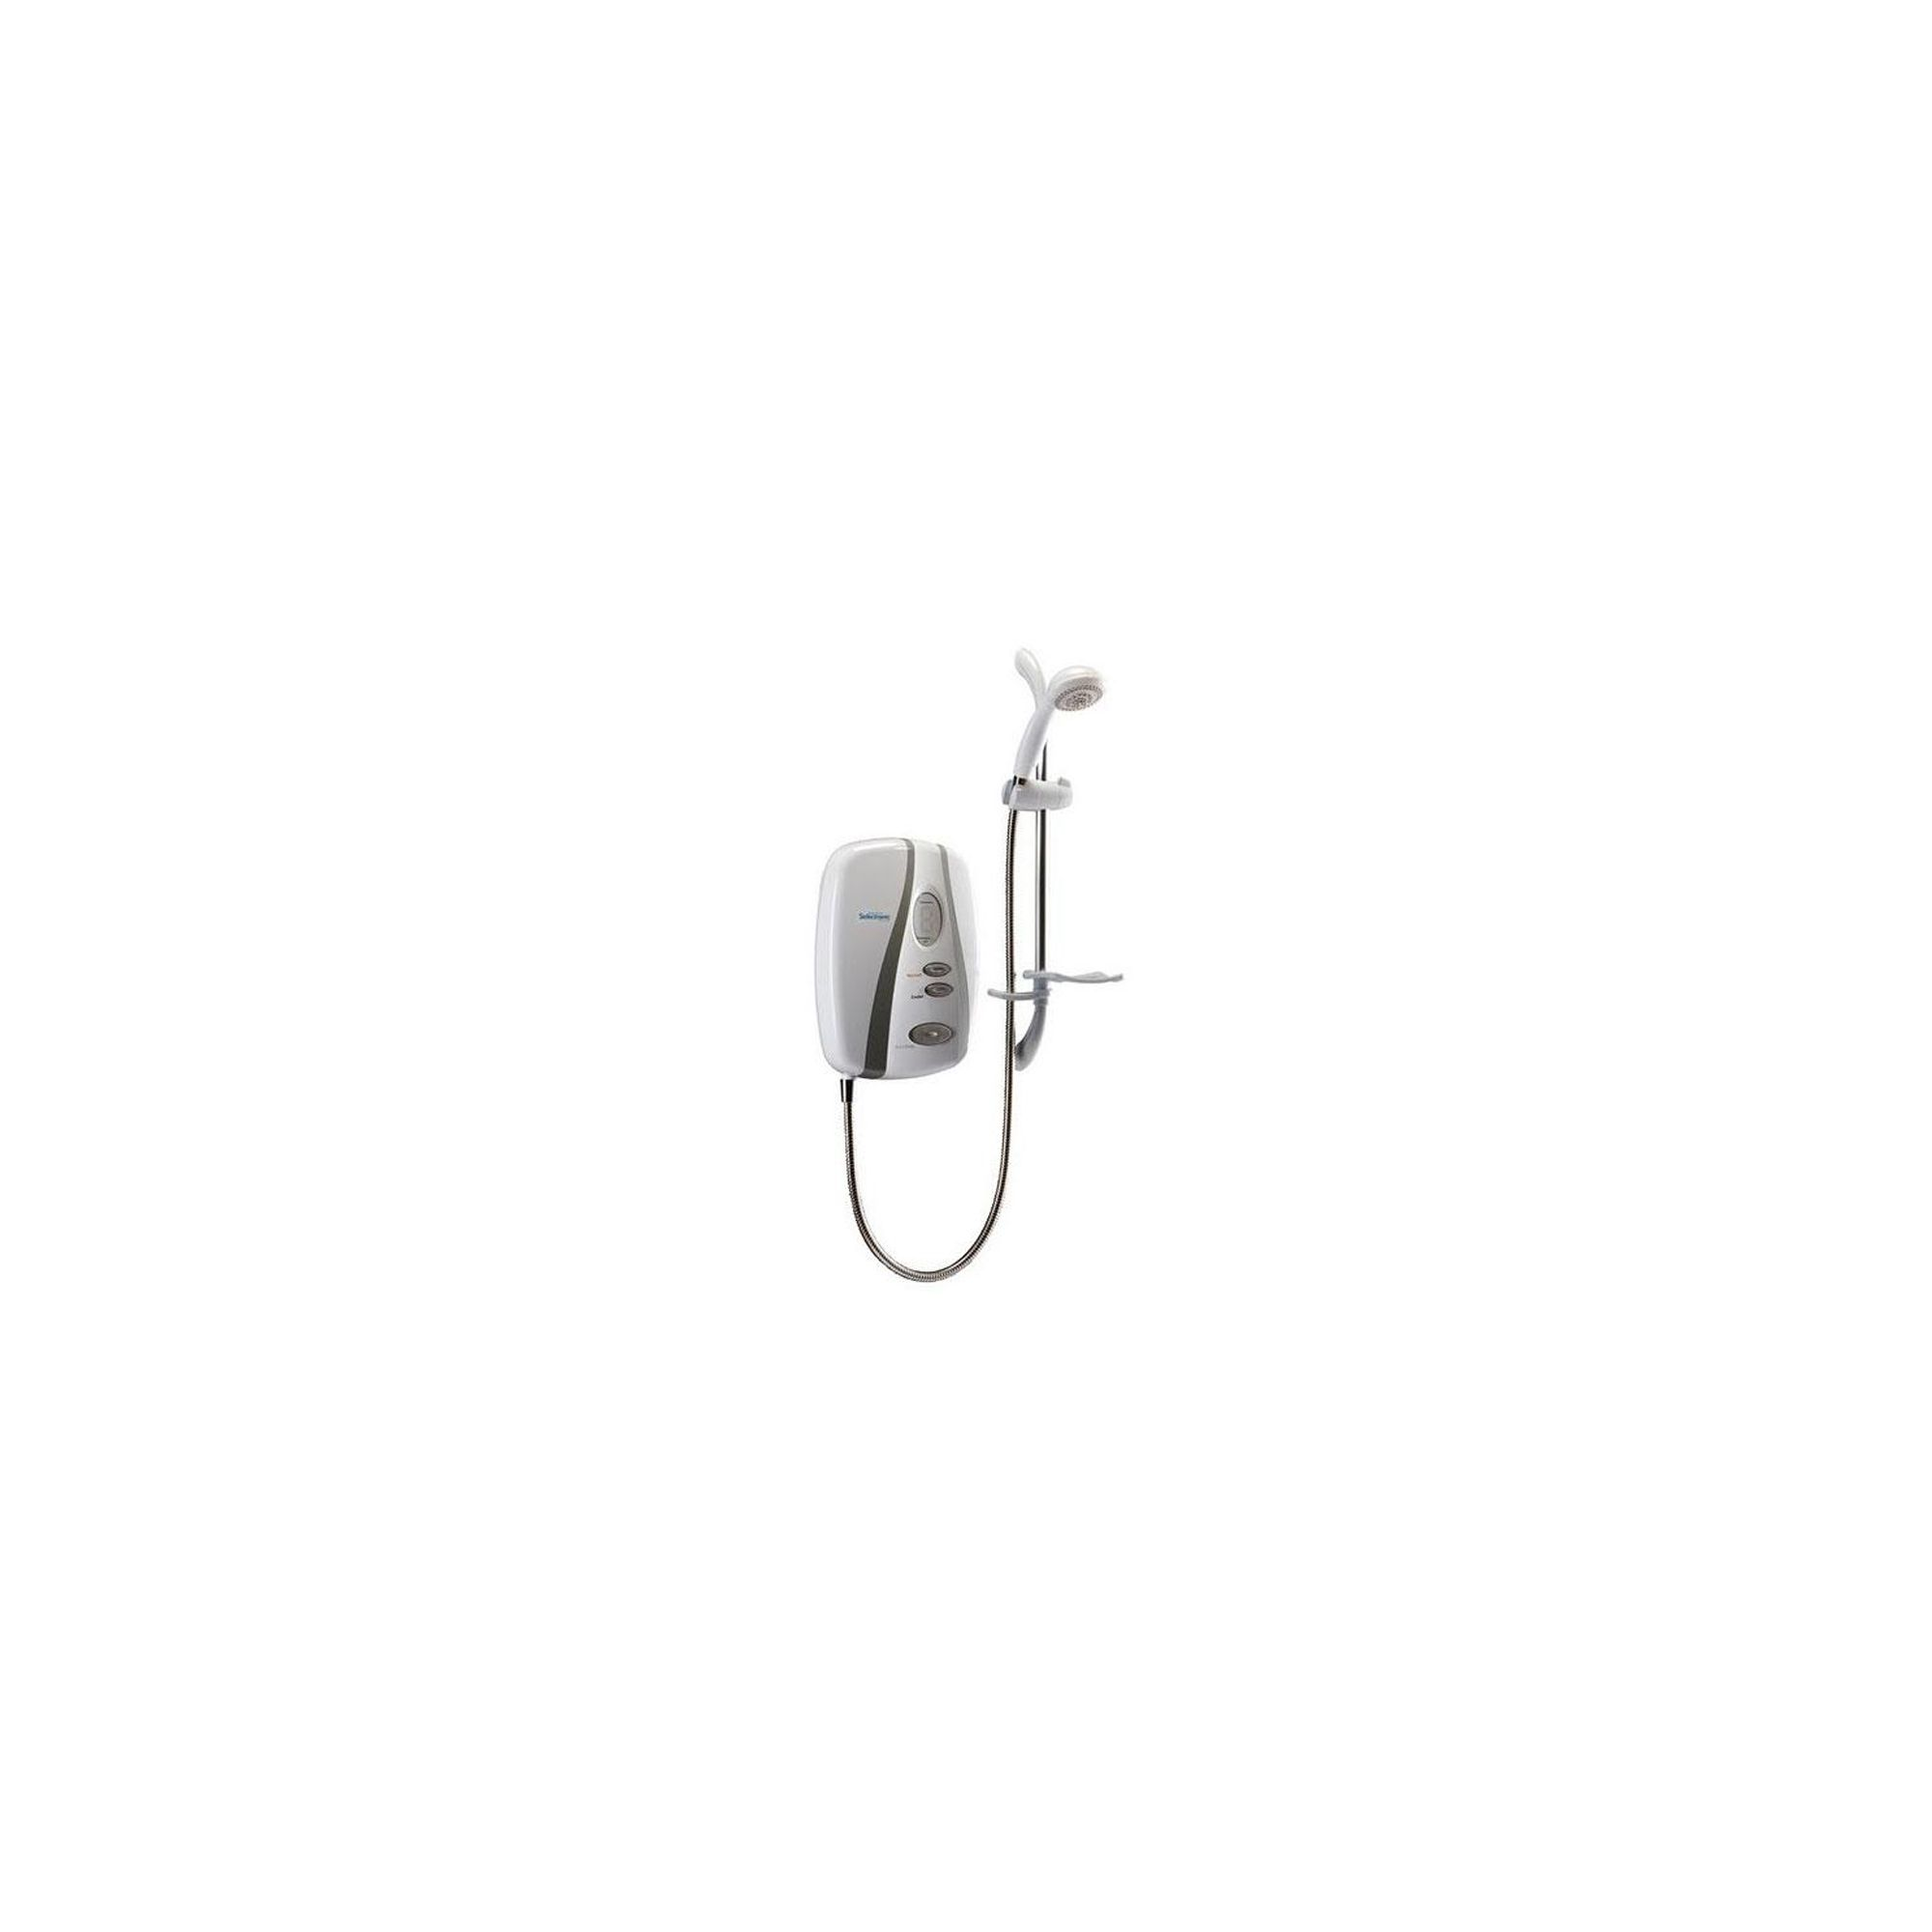 Redring Selectronic Premier Plus Electric Shower White/Chrome 8.5kW at Tesco Direct